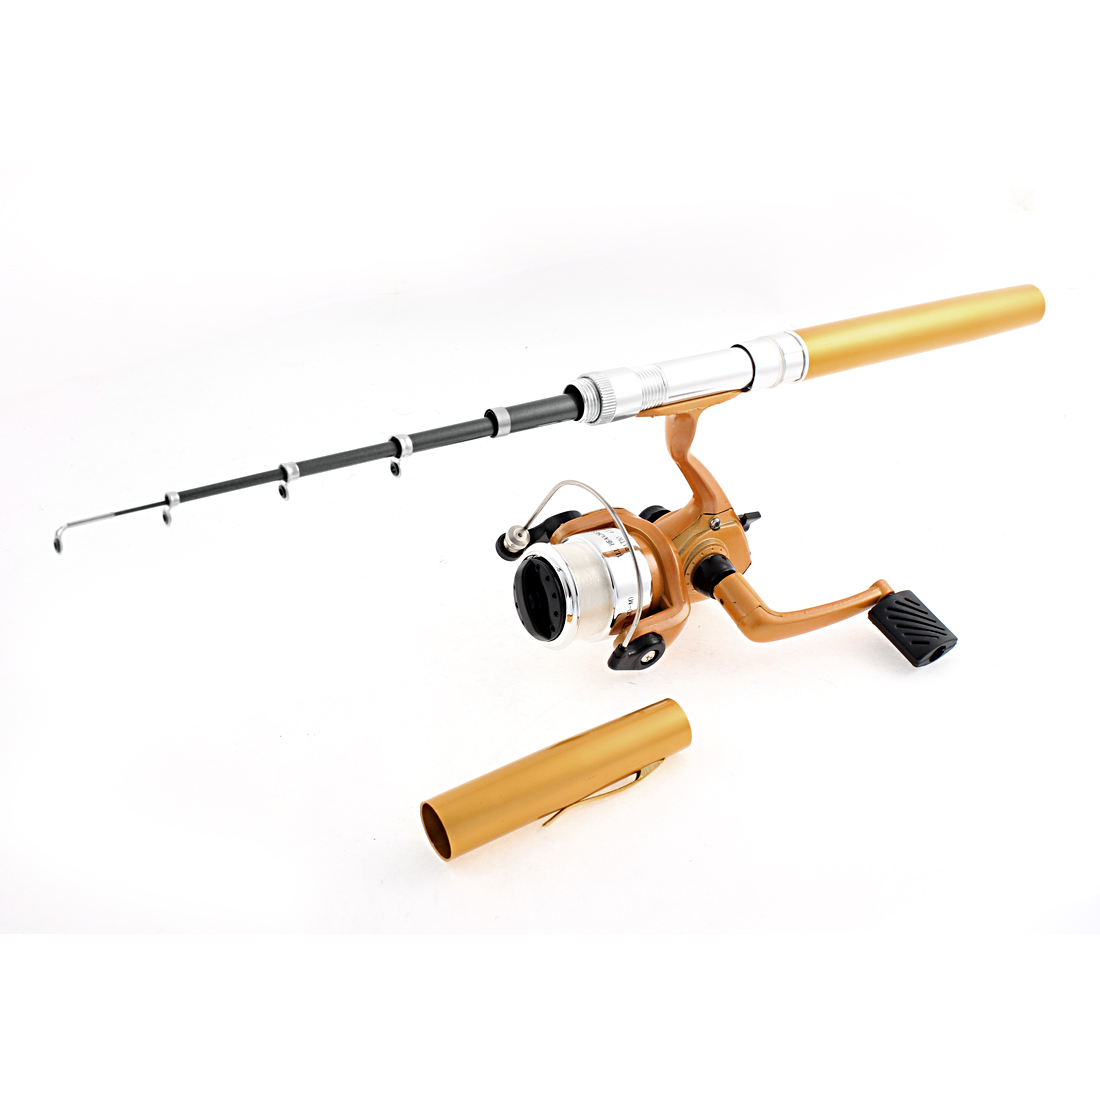 80cm Long Telescopic Travel Pen Shaped 5 Section Fishing Rod Camping Spinning Fish Pole Reel